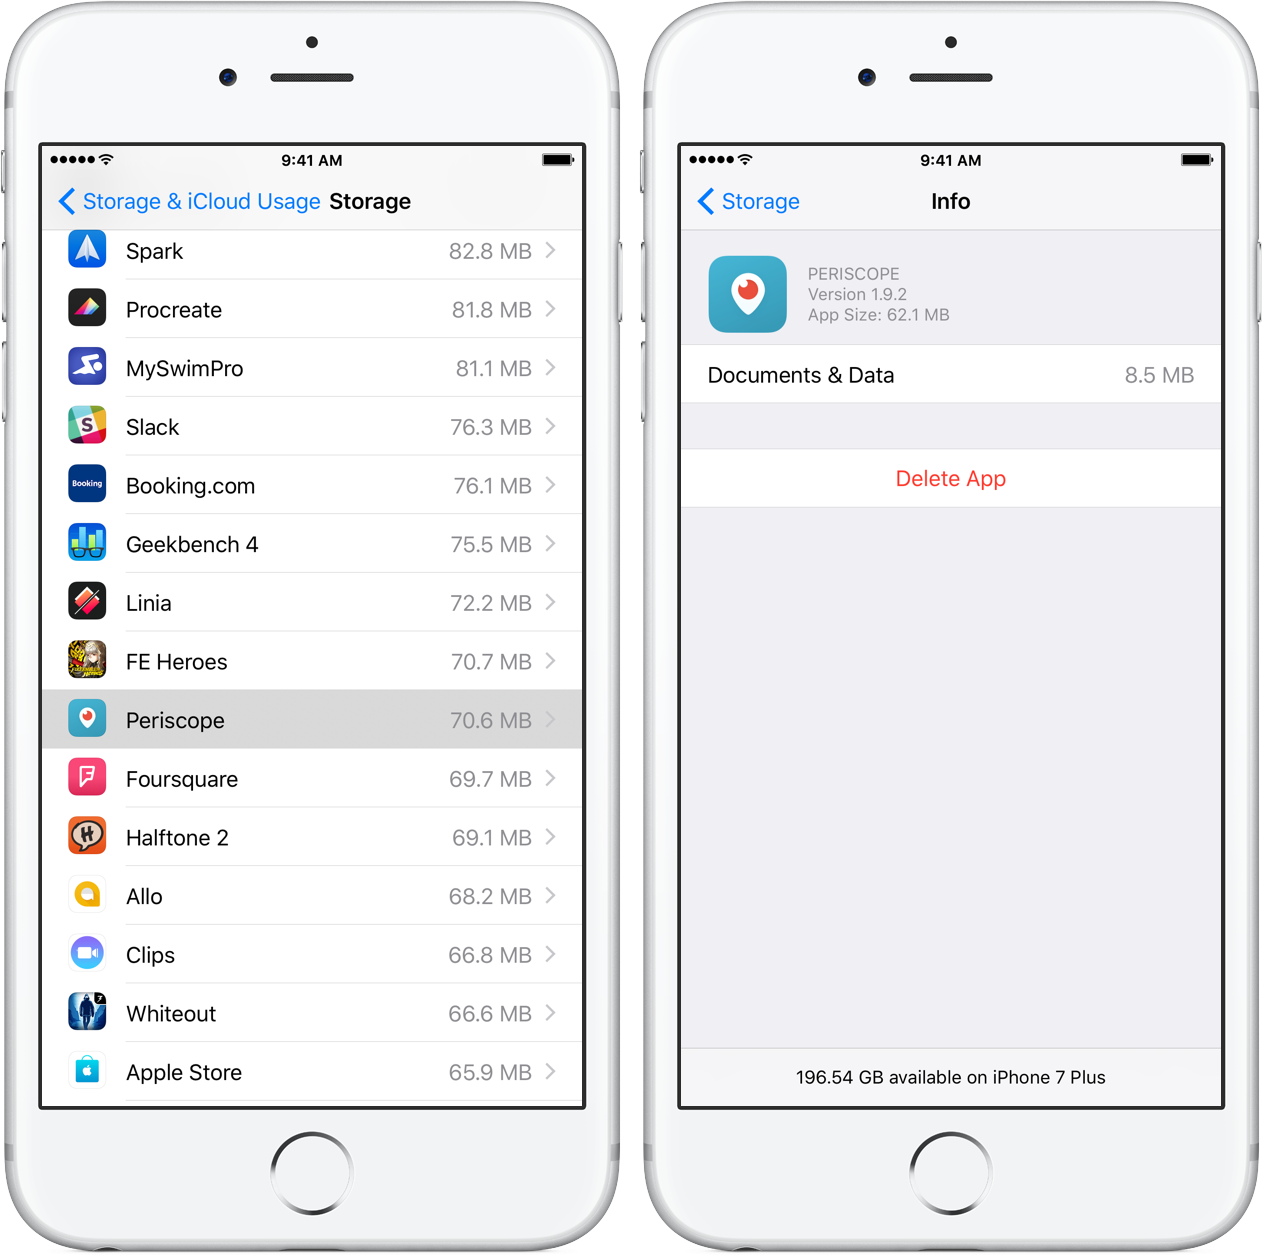 Tip: save storage space on your iPhone and iPad by clearing